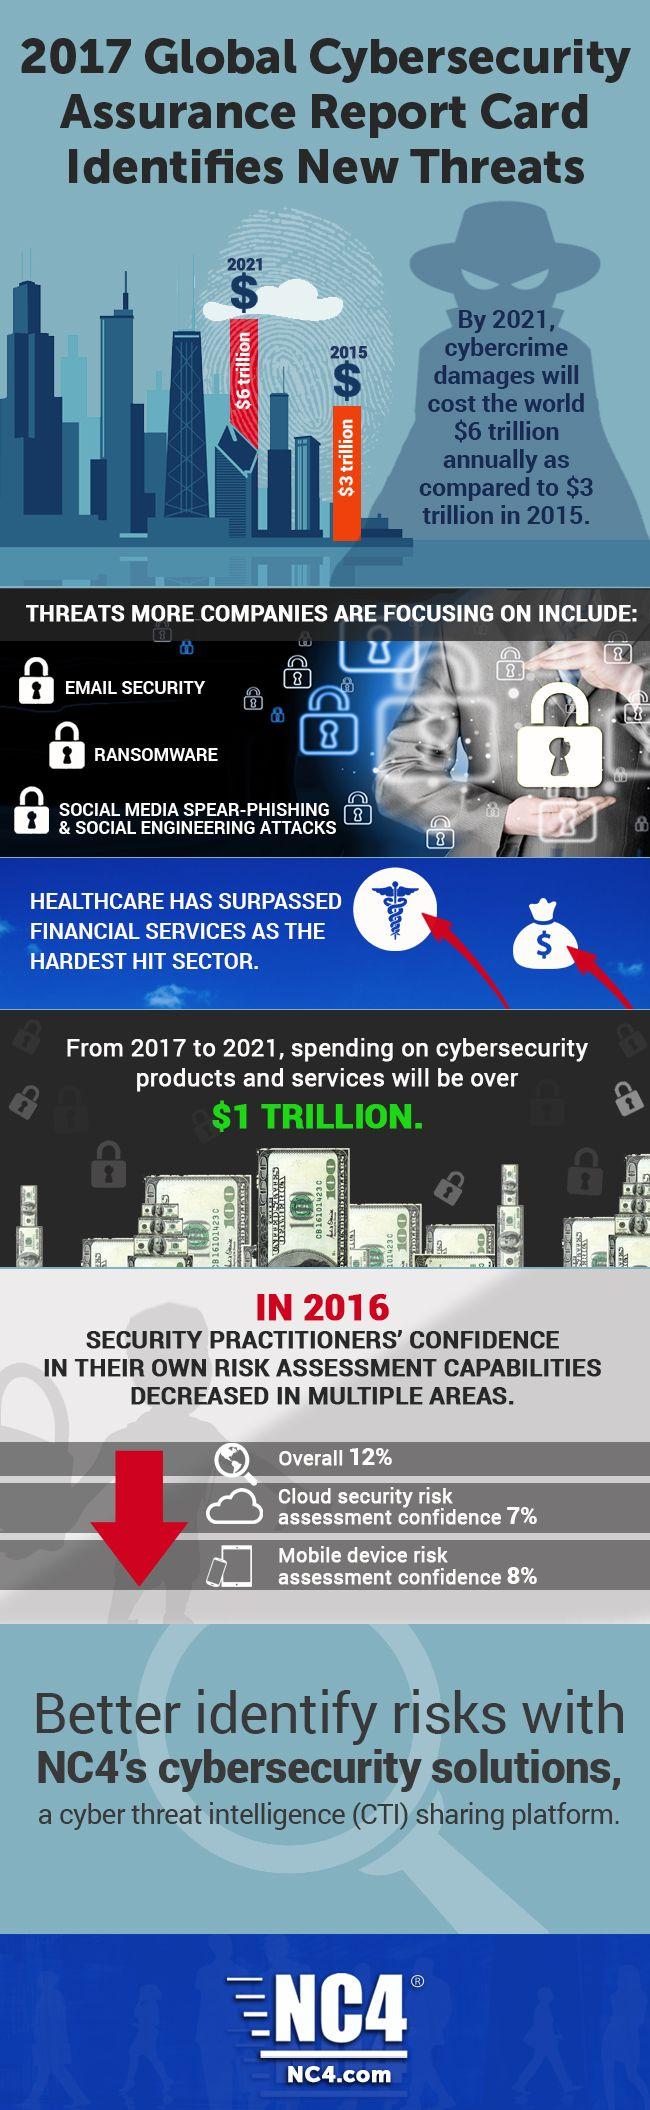 Infographic New Cyber Threats Identified in 2017.